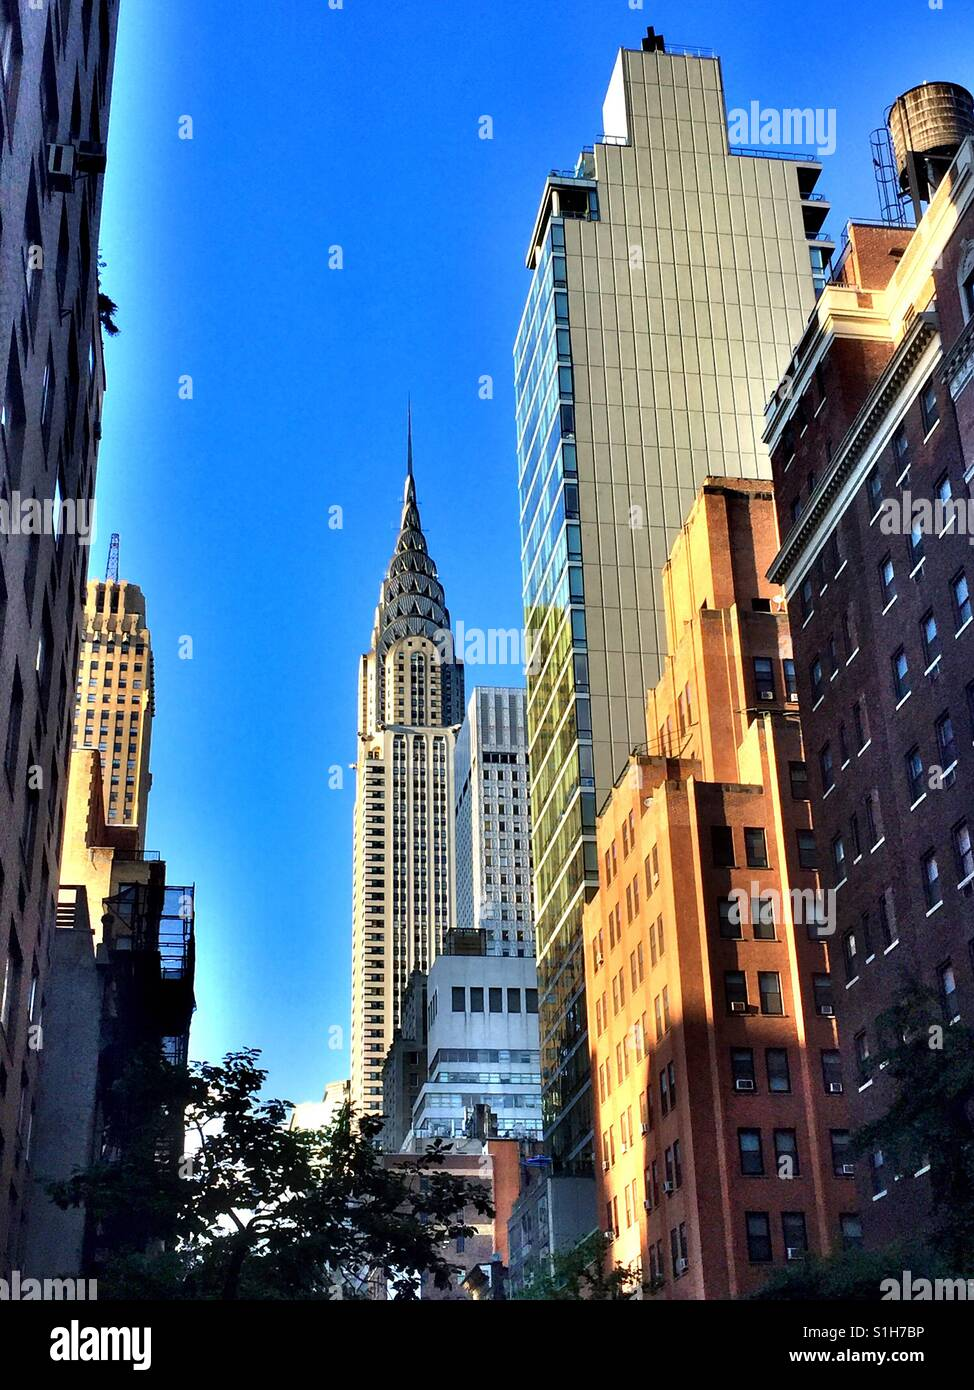 View of the Chrysler building looking north on Lexington Ave., Manhattan, NYC, USA - Stock Image